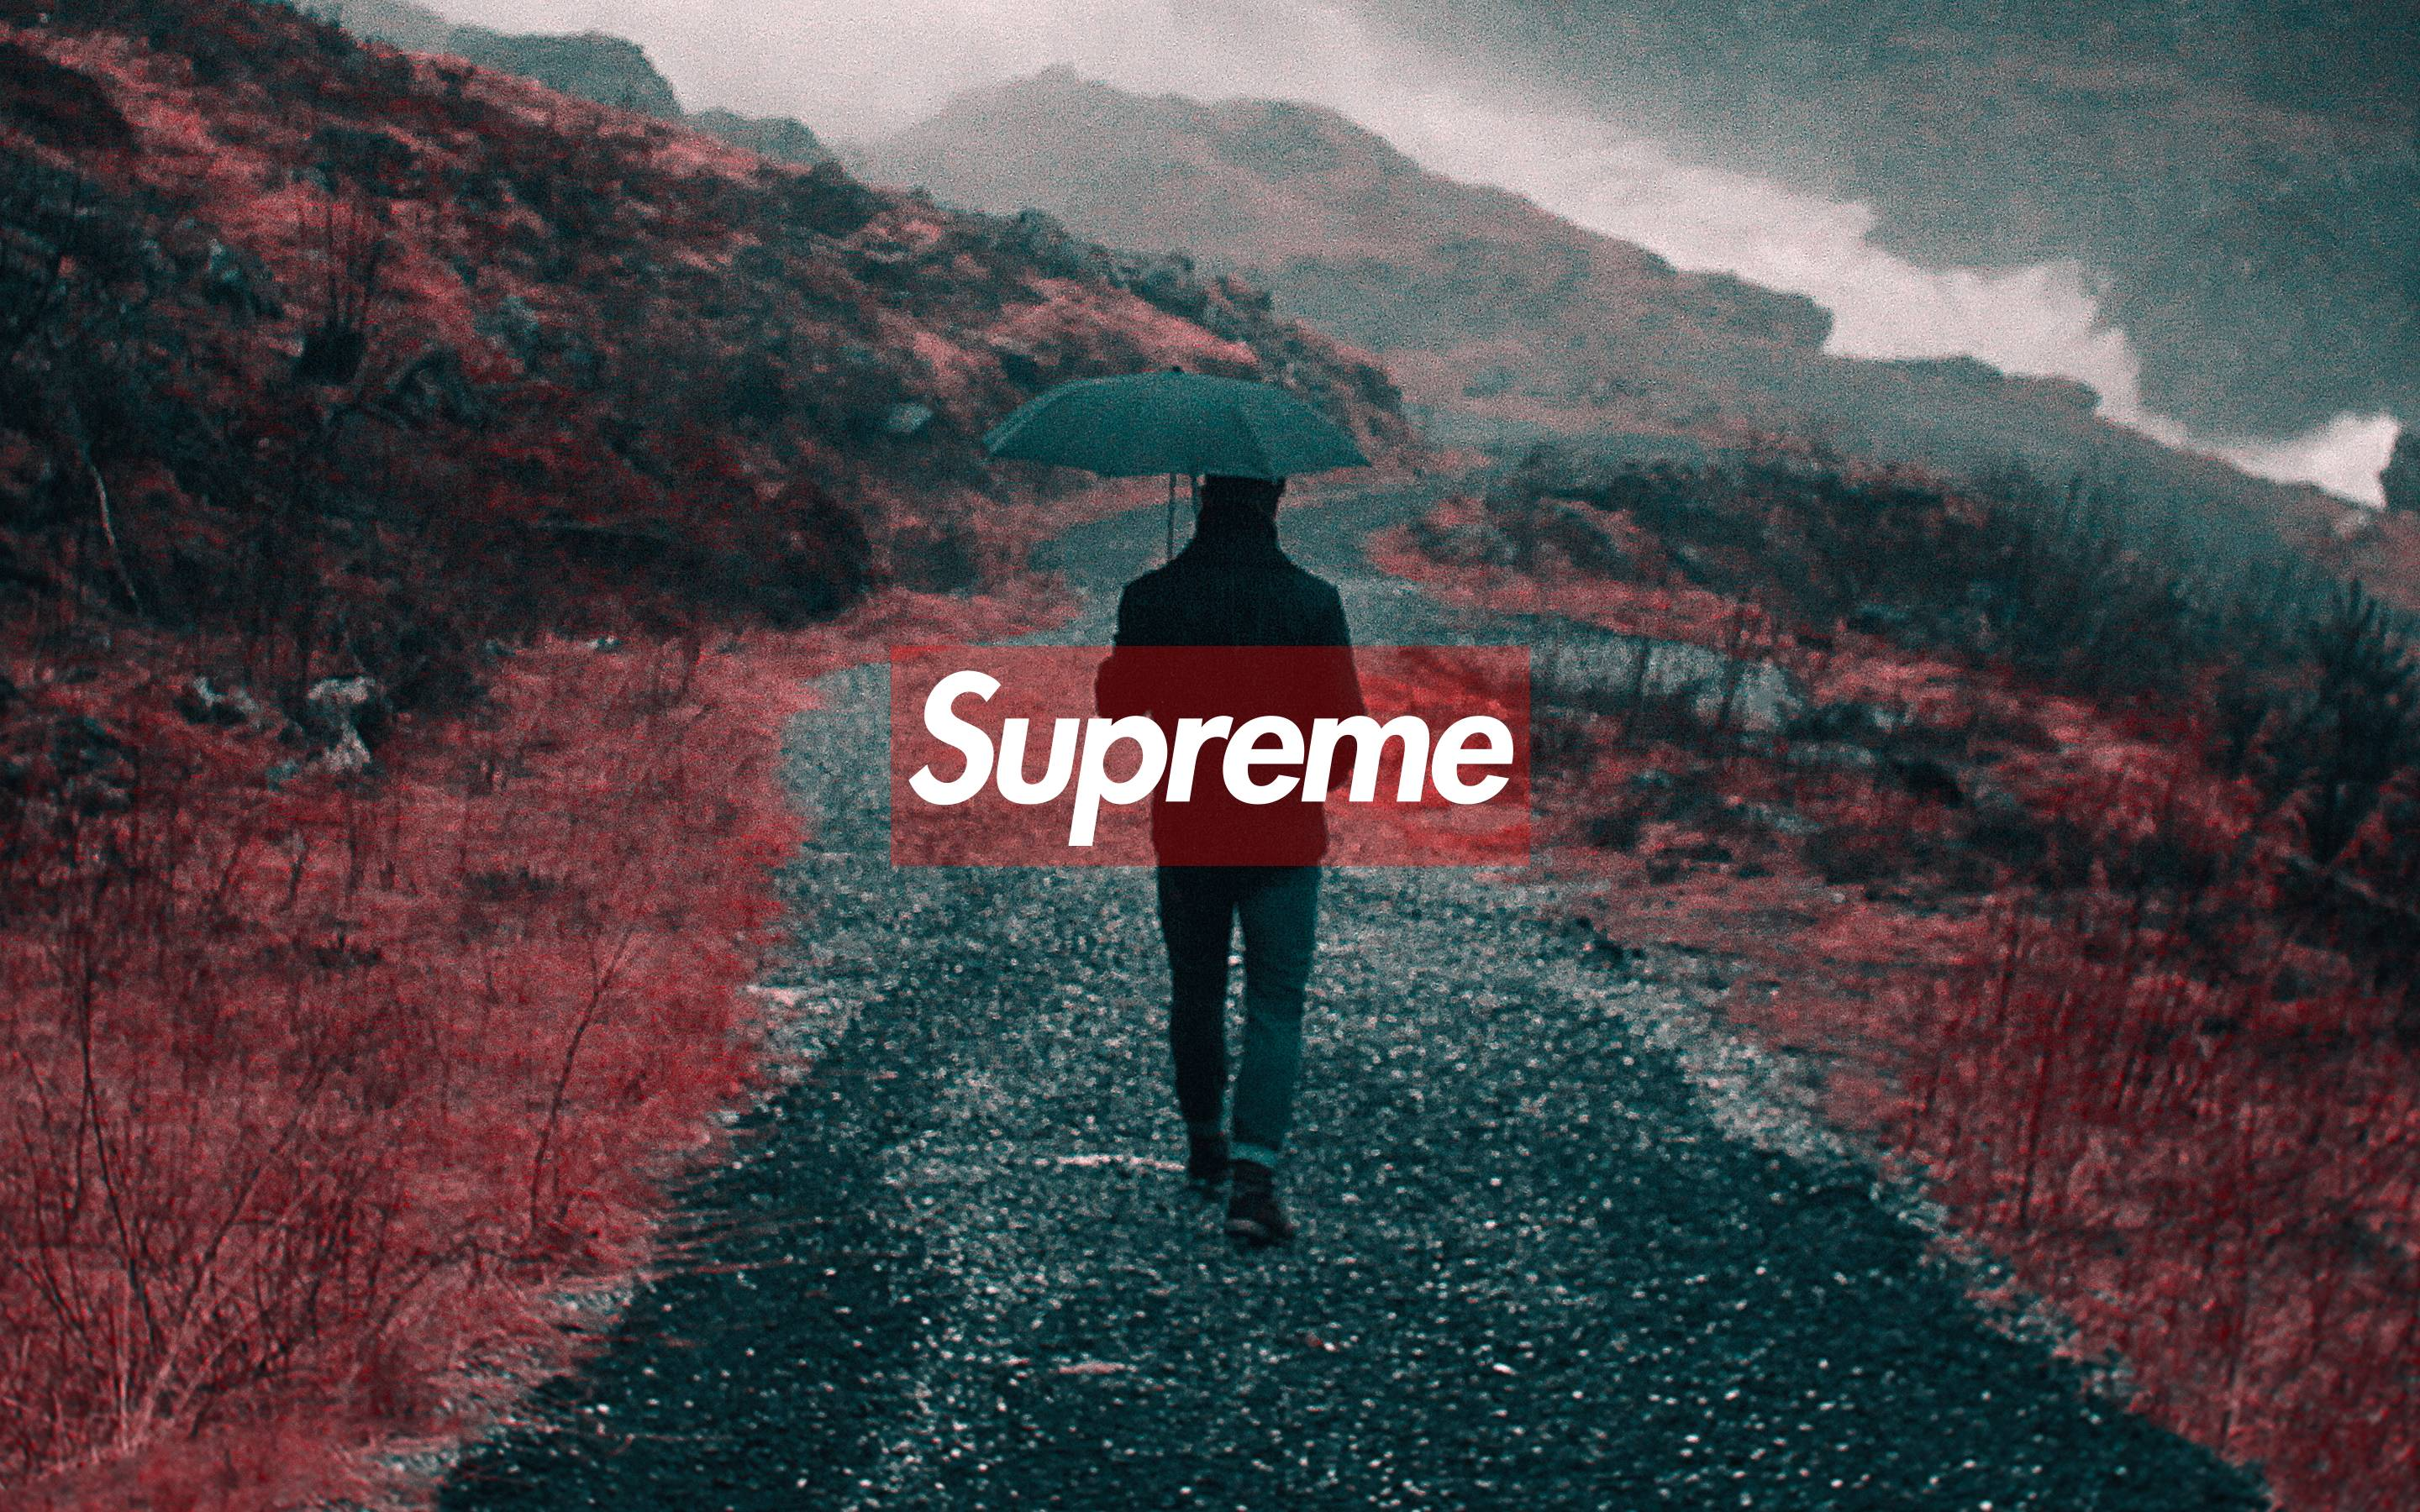 Supreme Hd Others 4k Wallpapers Images Backgrounds